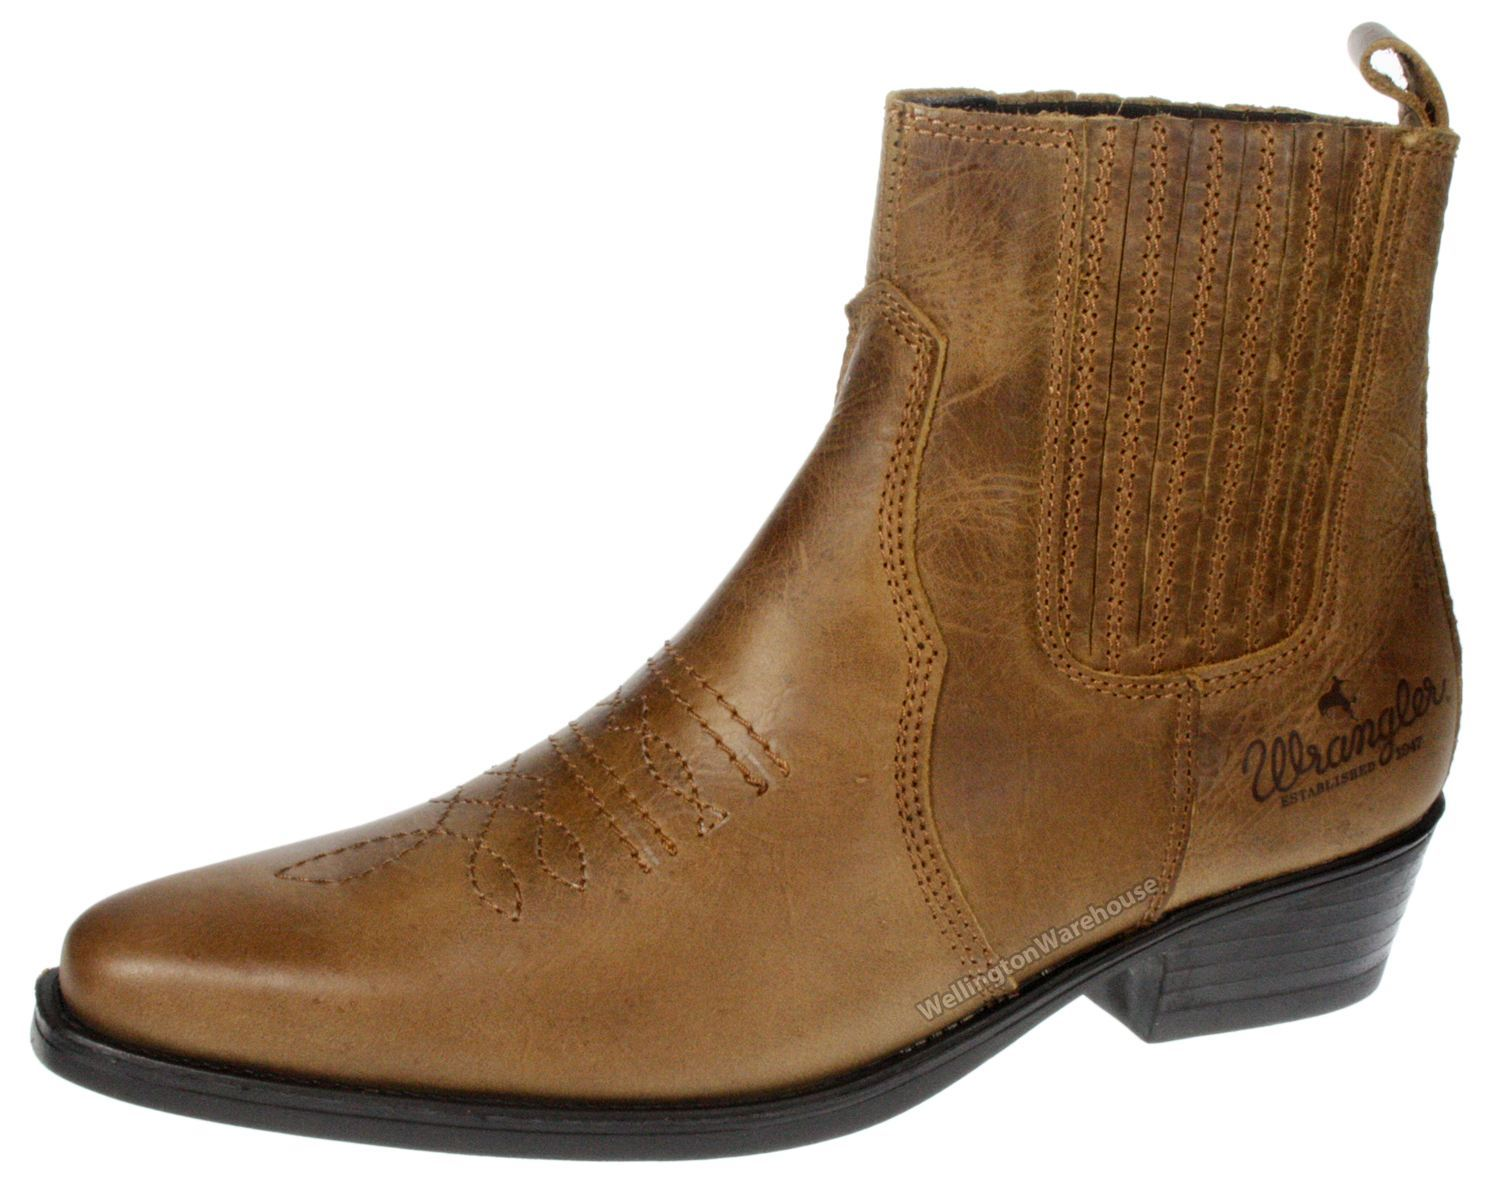 Tex Wrangler Leather Weston Cowboy Stiefel Chelsea On Pull